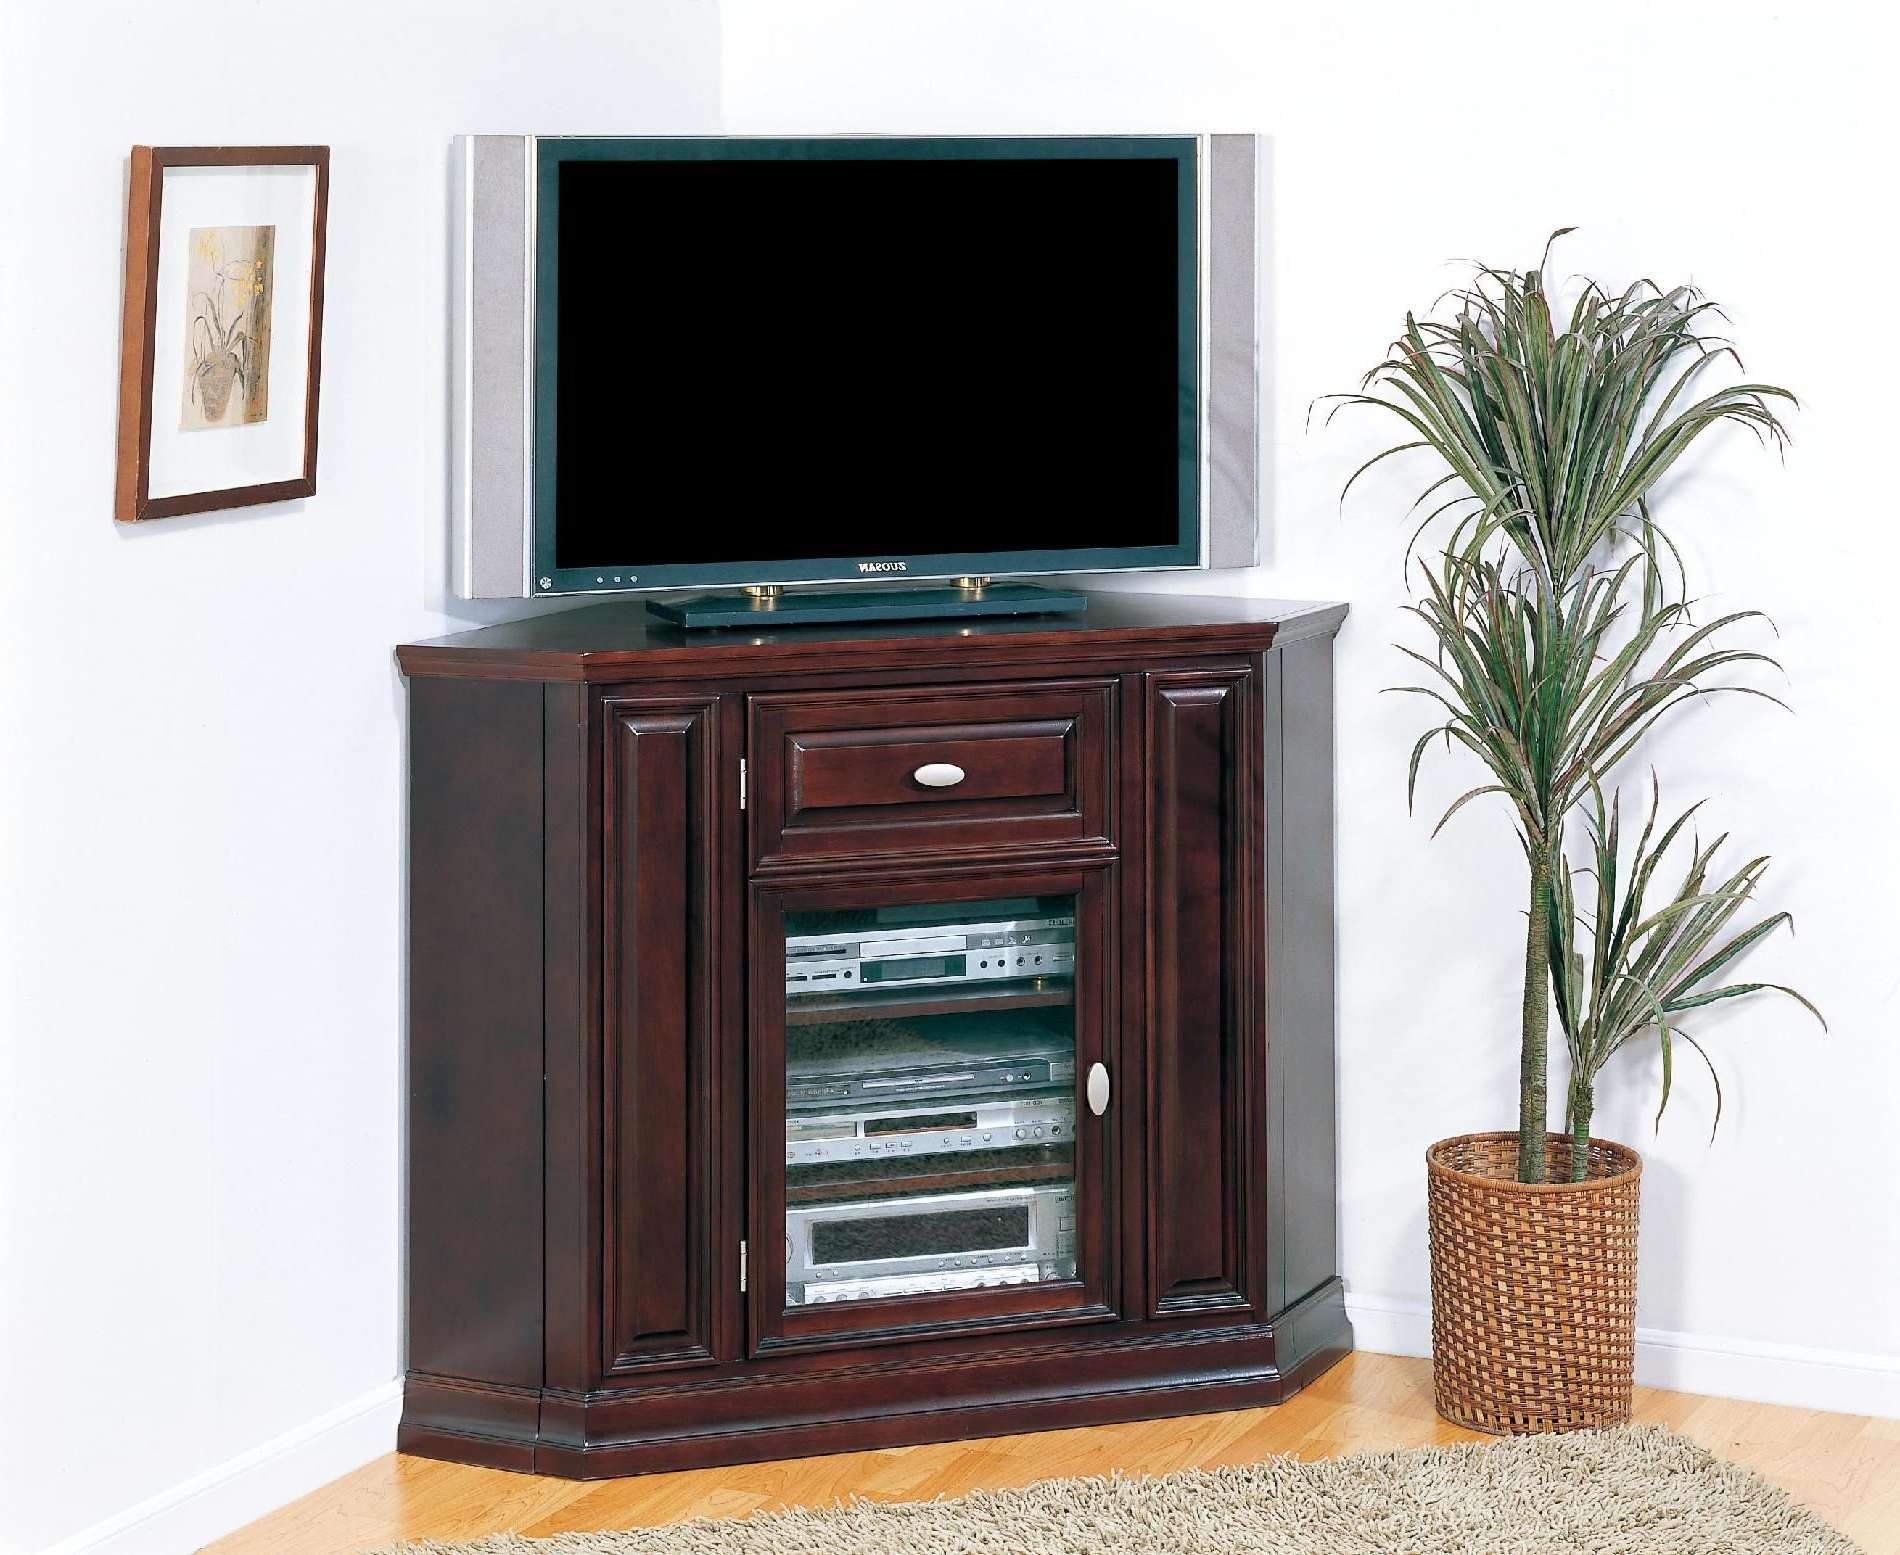 Tall Corner Tv Cabinet With Glass And Wood Doors Plus Drawer Of With Corner Tv Cabinets With Glass Doors (View 12 of 20)